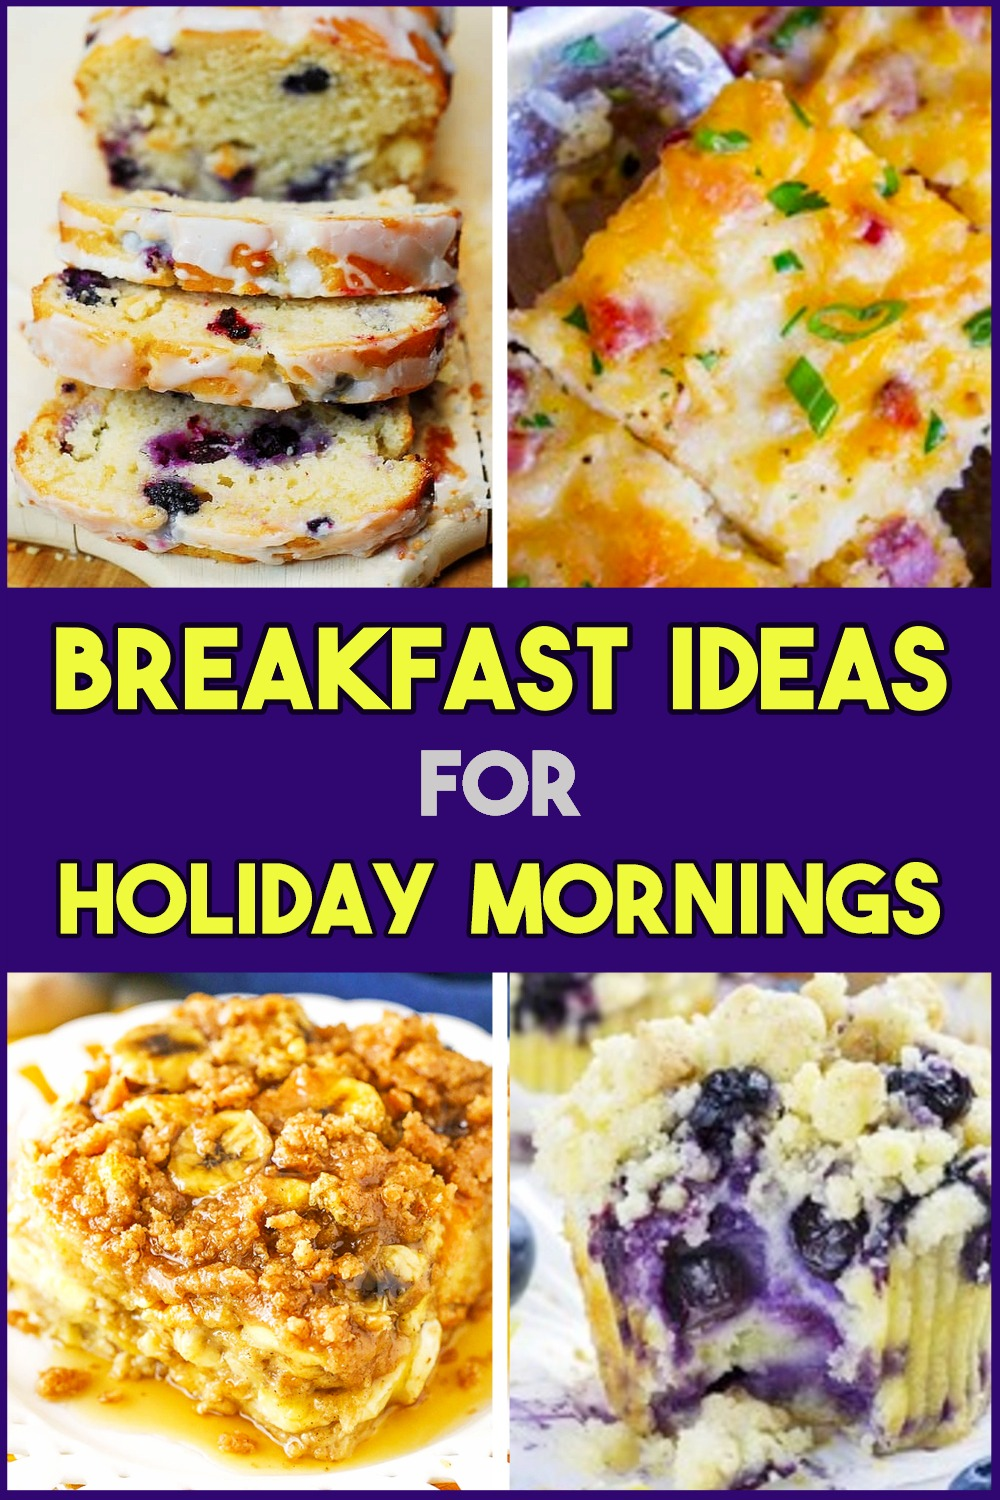 Holiday Morning Breakfast Ideas - Easy Breakfast Recipes For Thanksgiving, Xmas, Easter and All Holidays. Simple breakfast recipes for large groups/large family with a full house for breakfast on Christmas morning, Thanksgiving, Easter breakfast/brunch, Mothers Day, Moms birthday, Fathers Day etc - easy breakfast ideas for non breakfast eaters/non breakfast people inc Holiday morning French Toast casserole.  Here's what to cook for a large group, family mornings, party guests or girls weekend